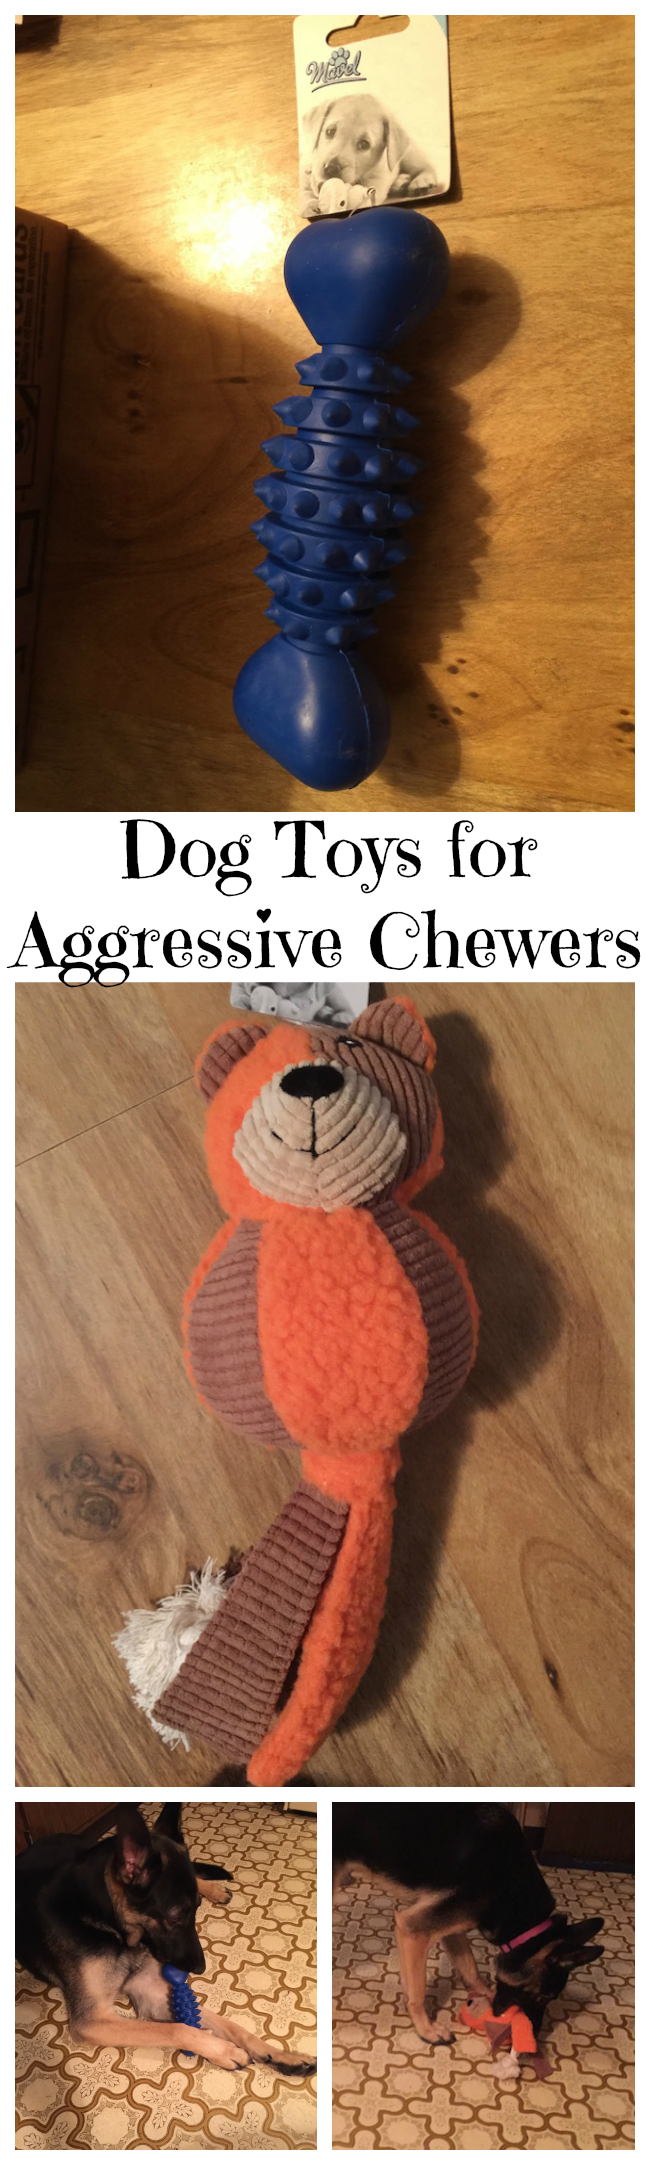 Dogs can never have too many toys. If your dog is like Harley, she goes through dog toys like crazy. Always trying to wreck them and ripping them apart.